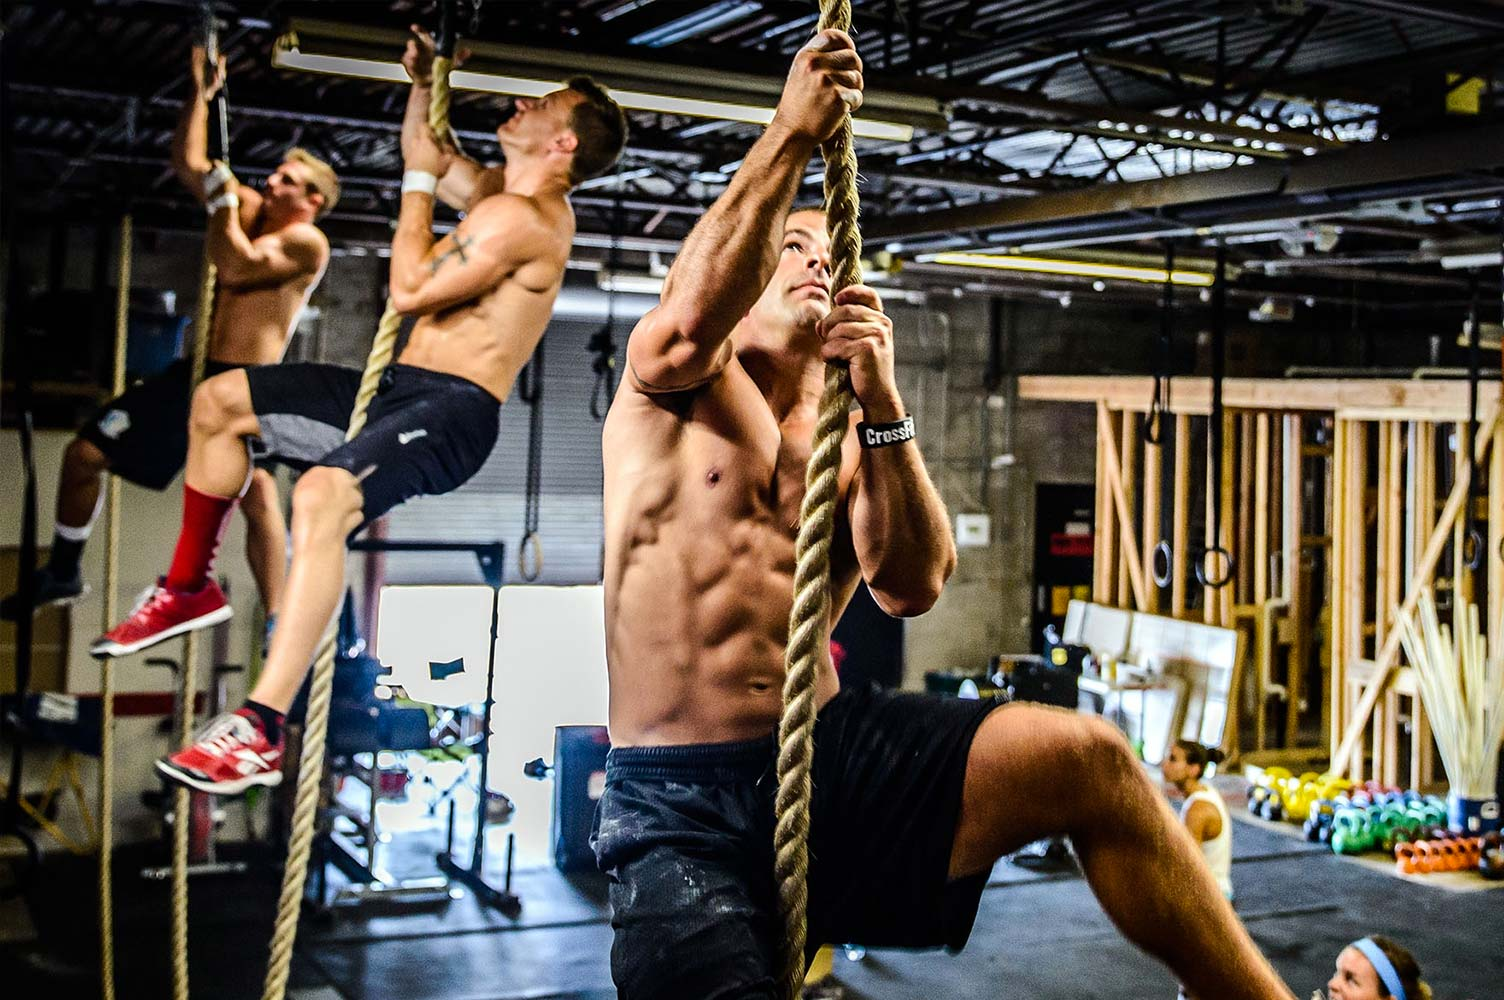 Combination Training: CrossFit and Powerlifting - All About powerlifting